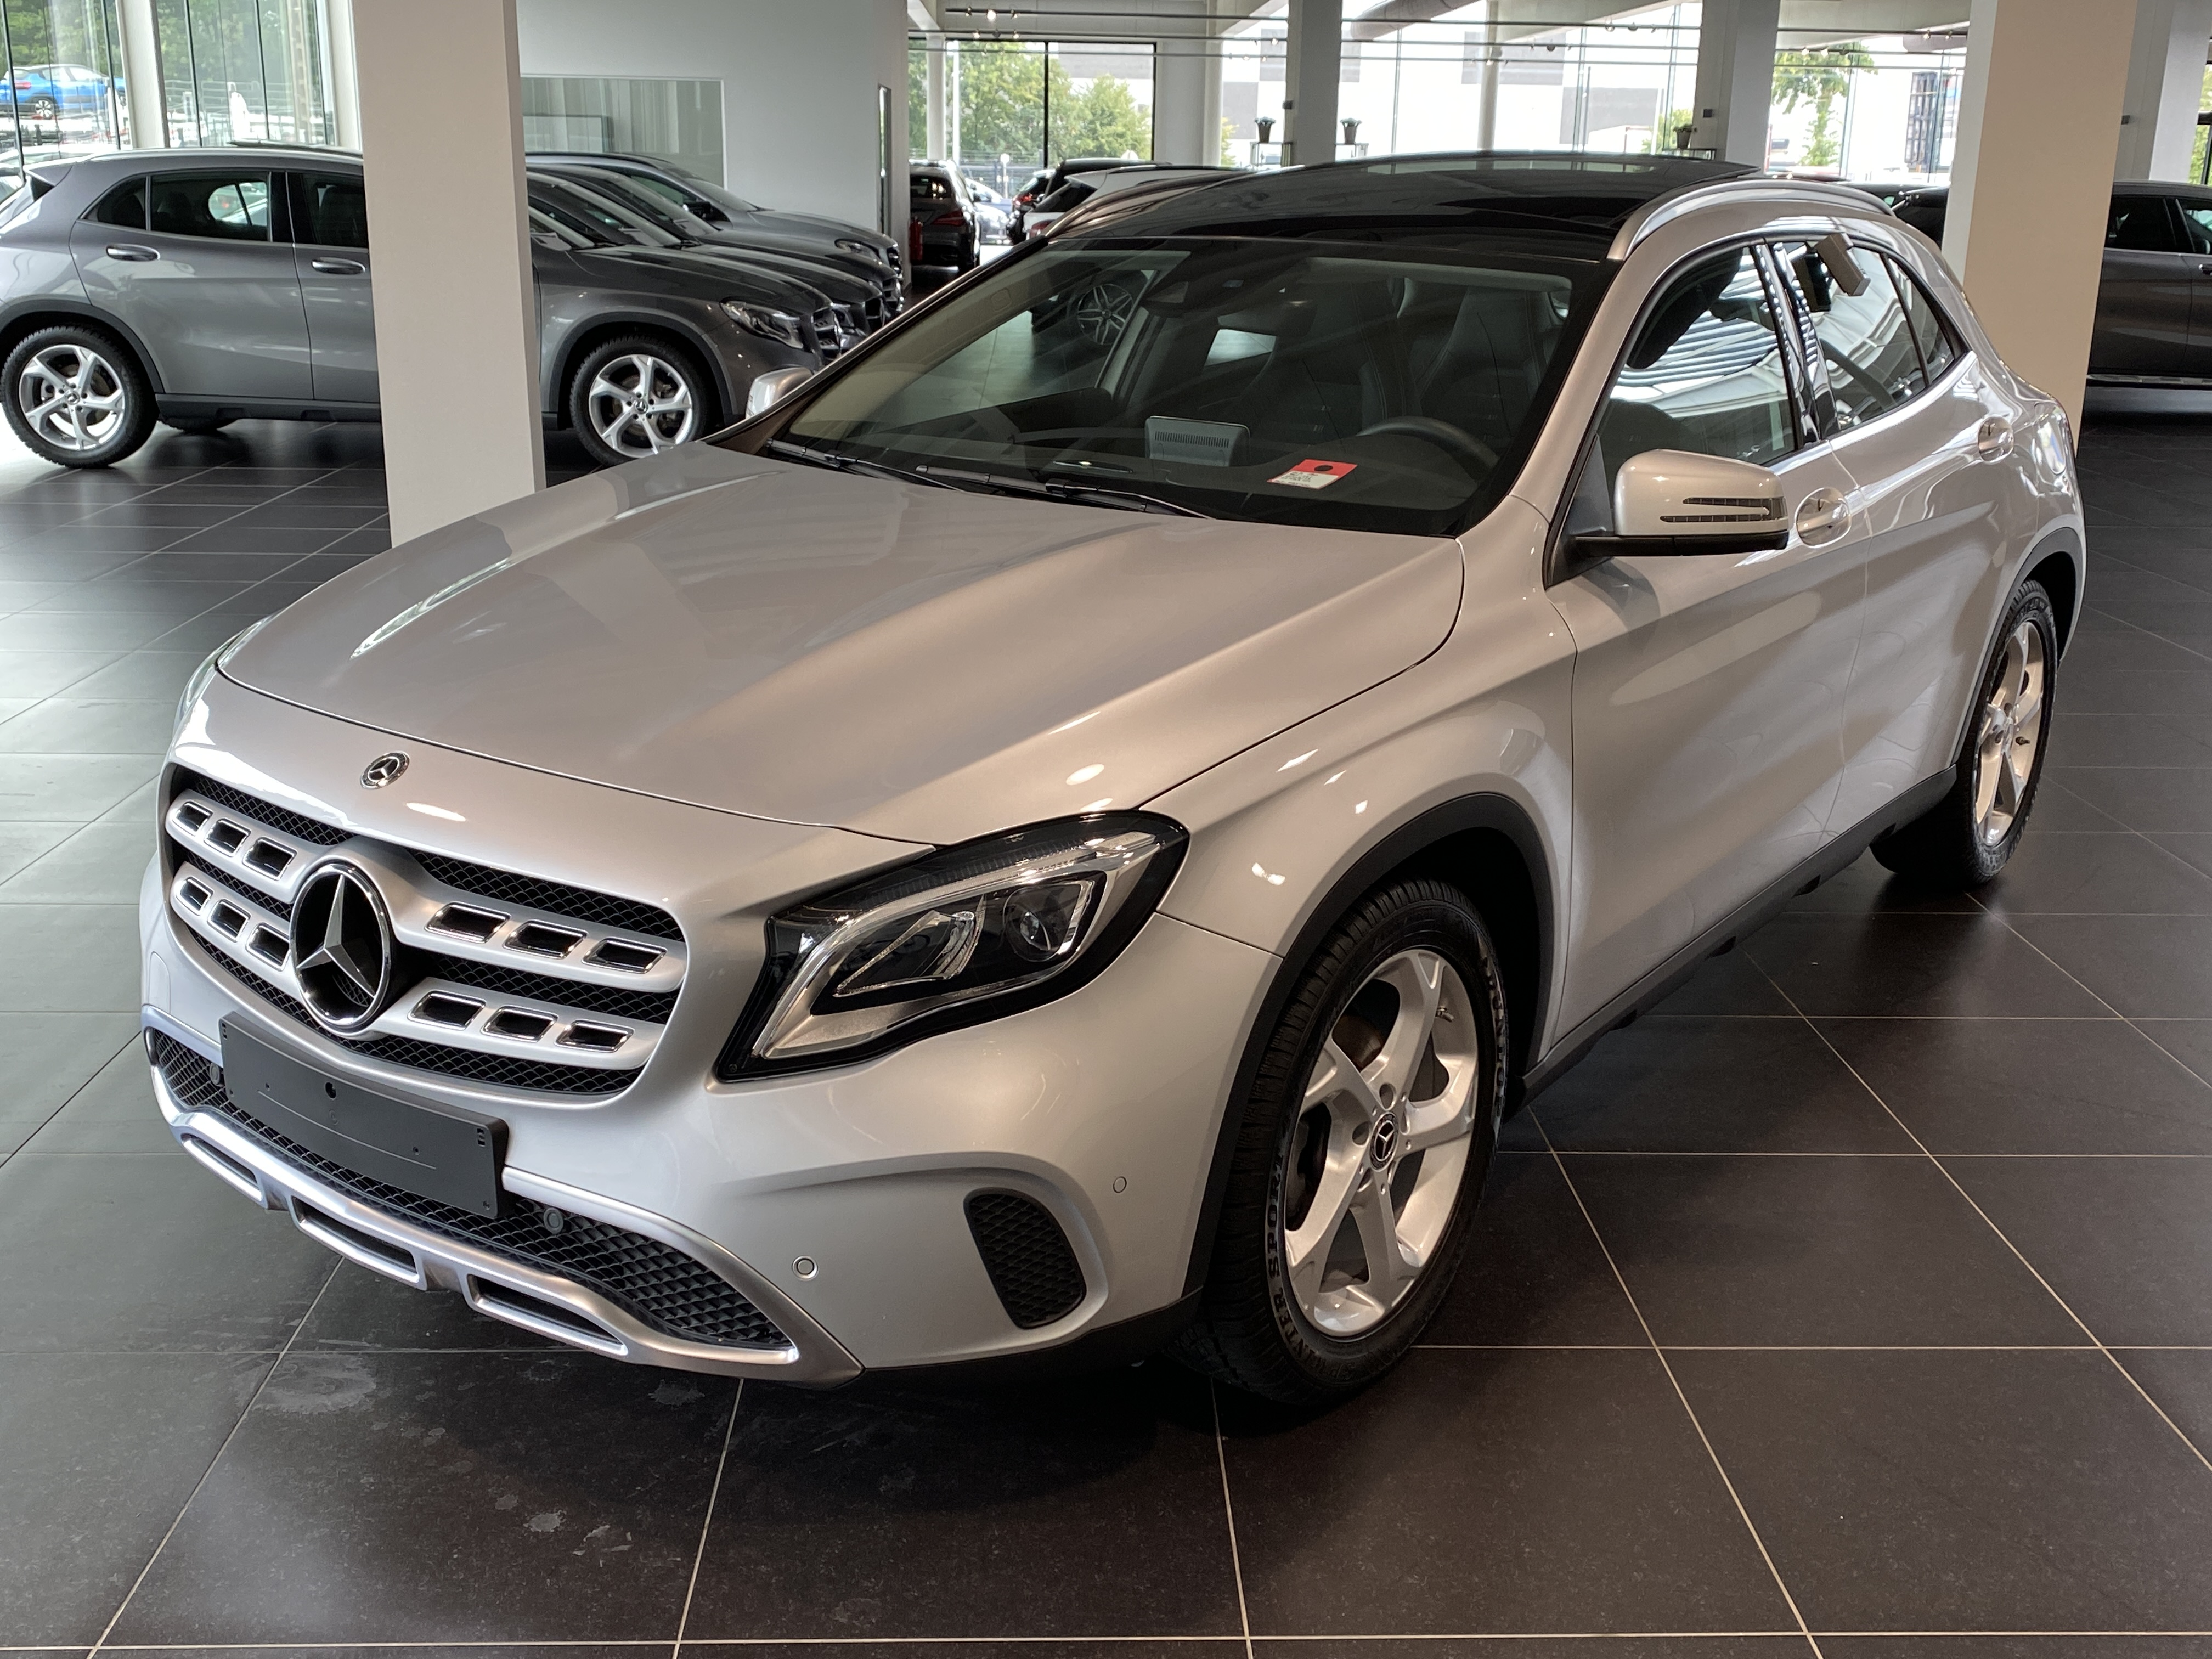 MERCEDES-BENZ GLA 180 Urban Panorama, DAB, Led High Performance, Park Pilot